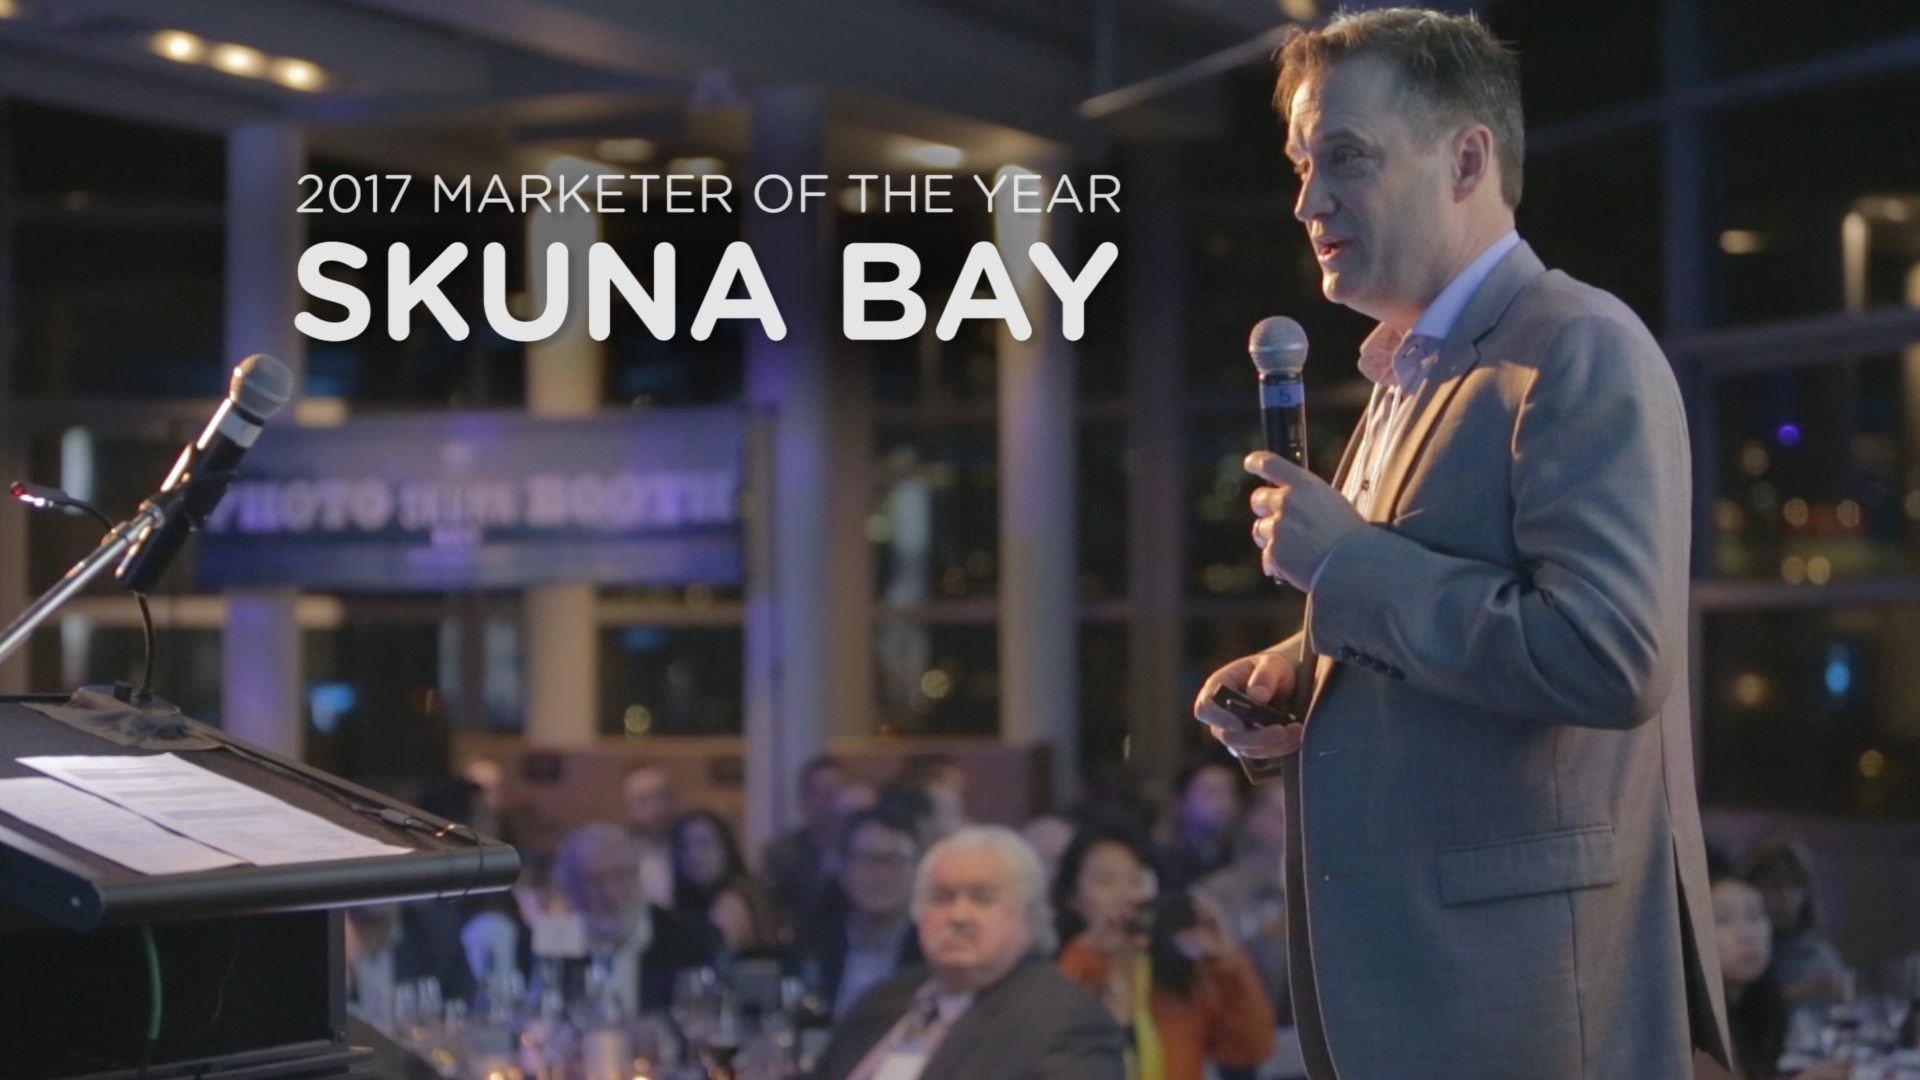 Video: 2017 Marketer of the year - Skuna Bay